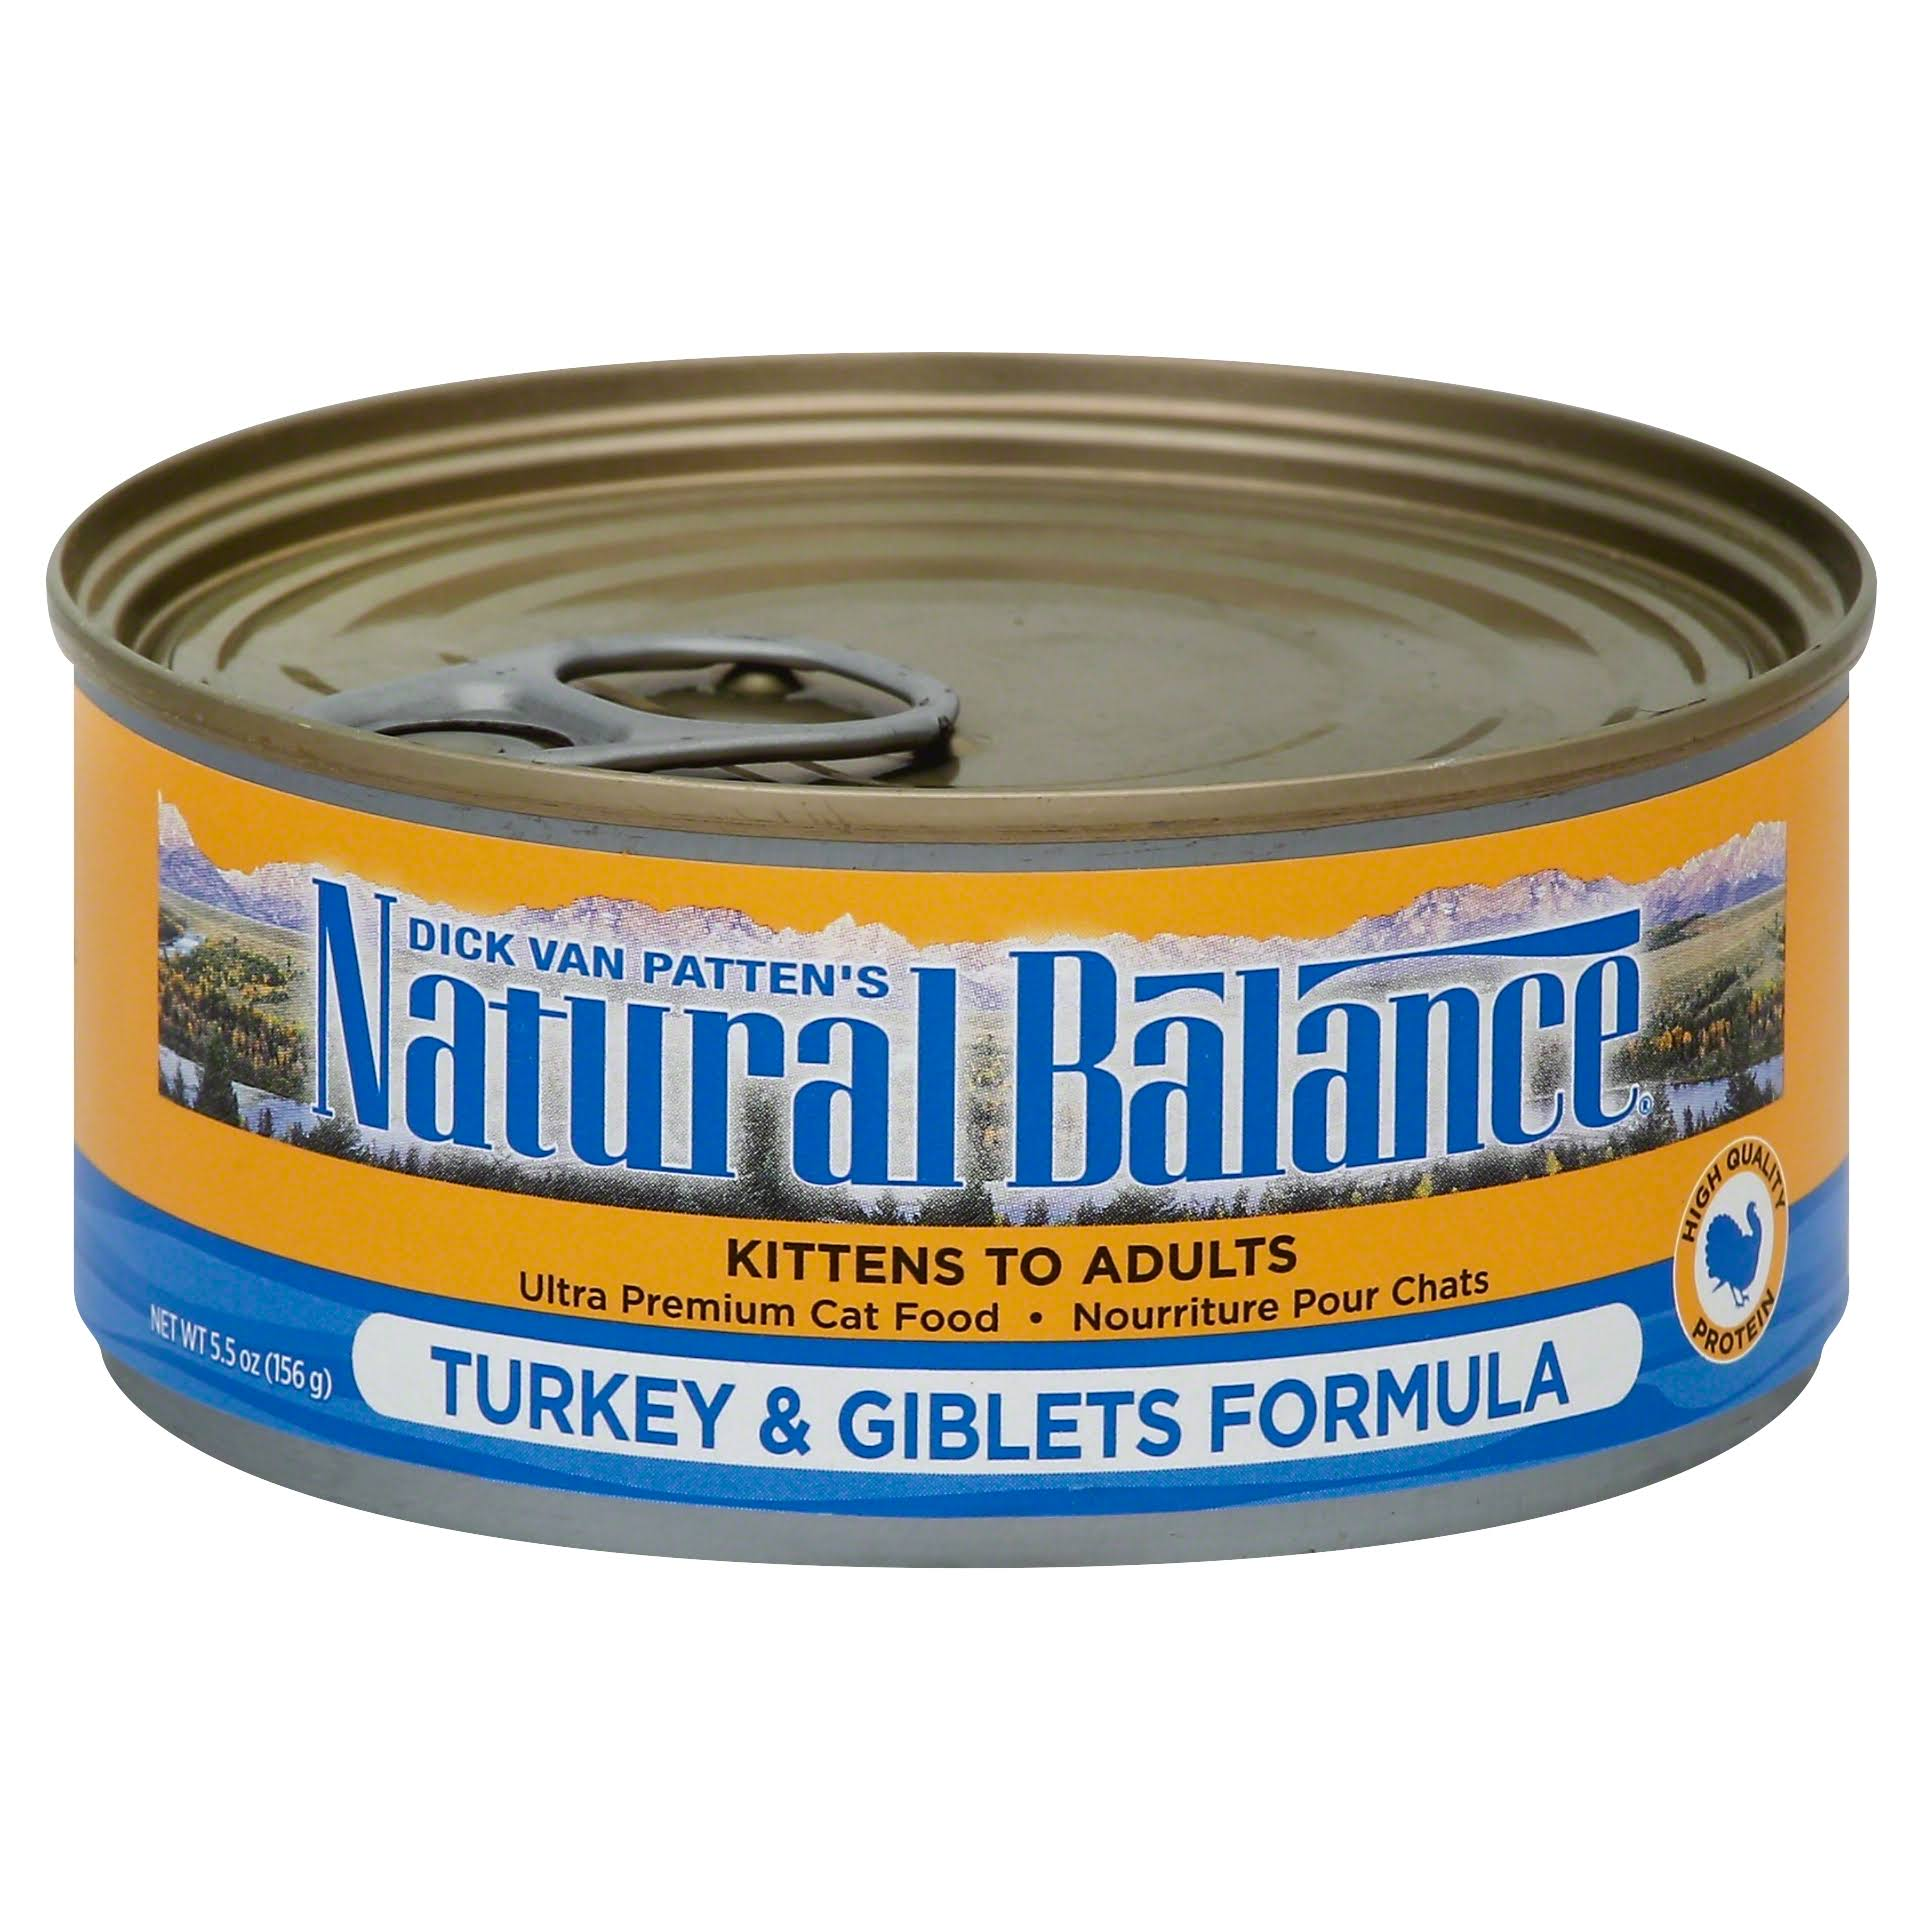 Dick Van Patten's Natural Balance Canned Cat Food - Turkey & Giblet, 5.5 Oz